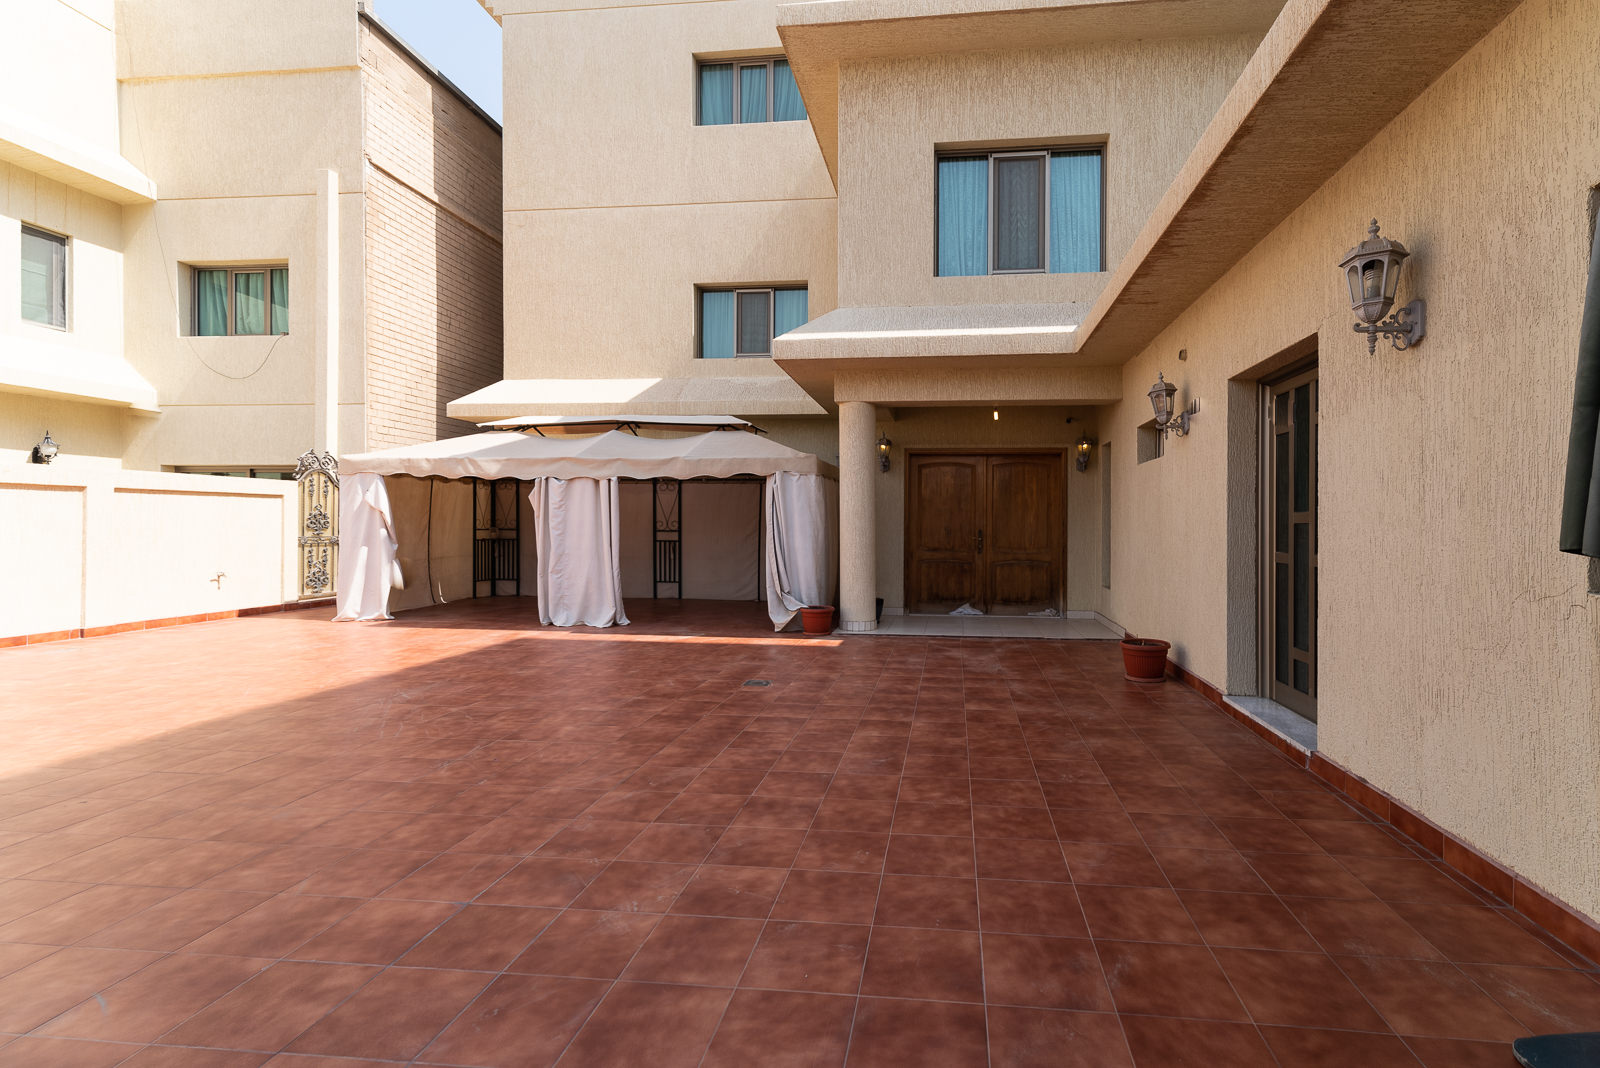 Sabah Al Salem – very spacious, unfurnished, two bedroom ground floor w/100m2 of private yard